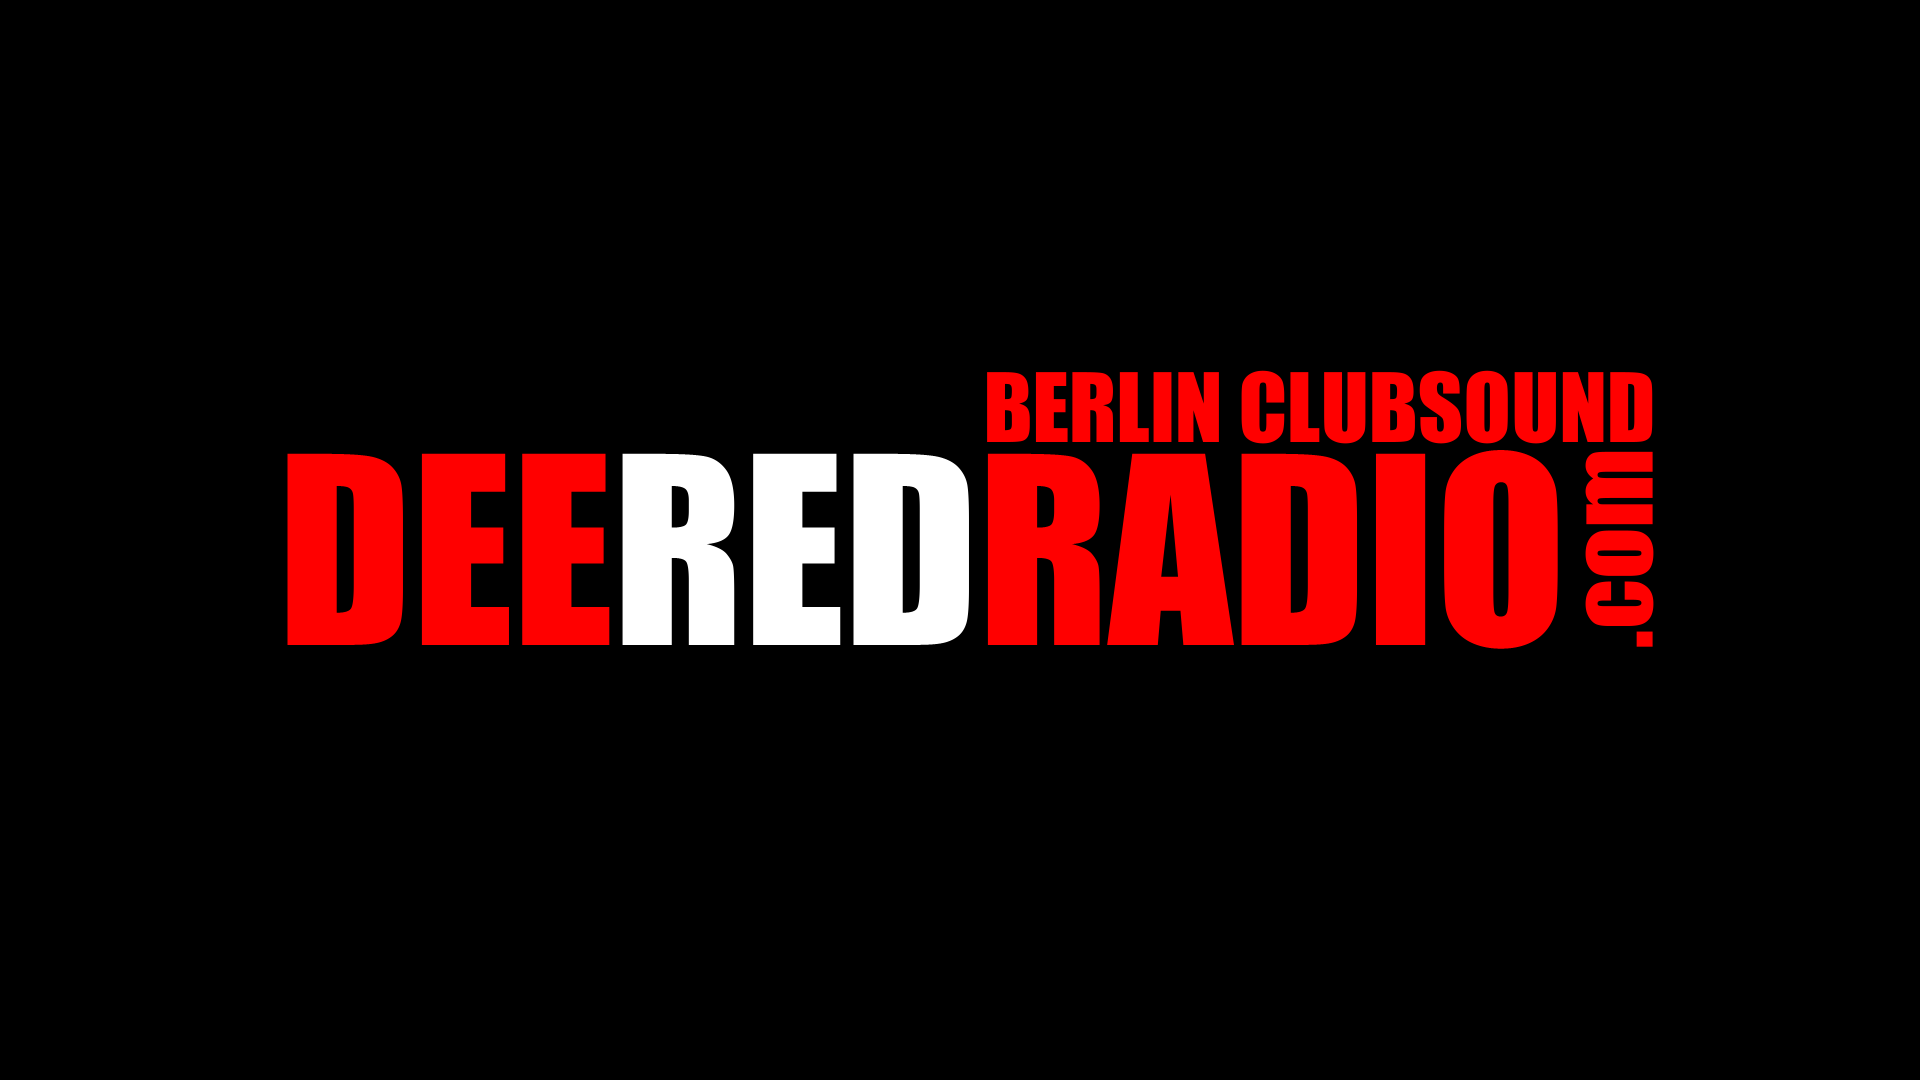 1920x1080-deeredradio-new2